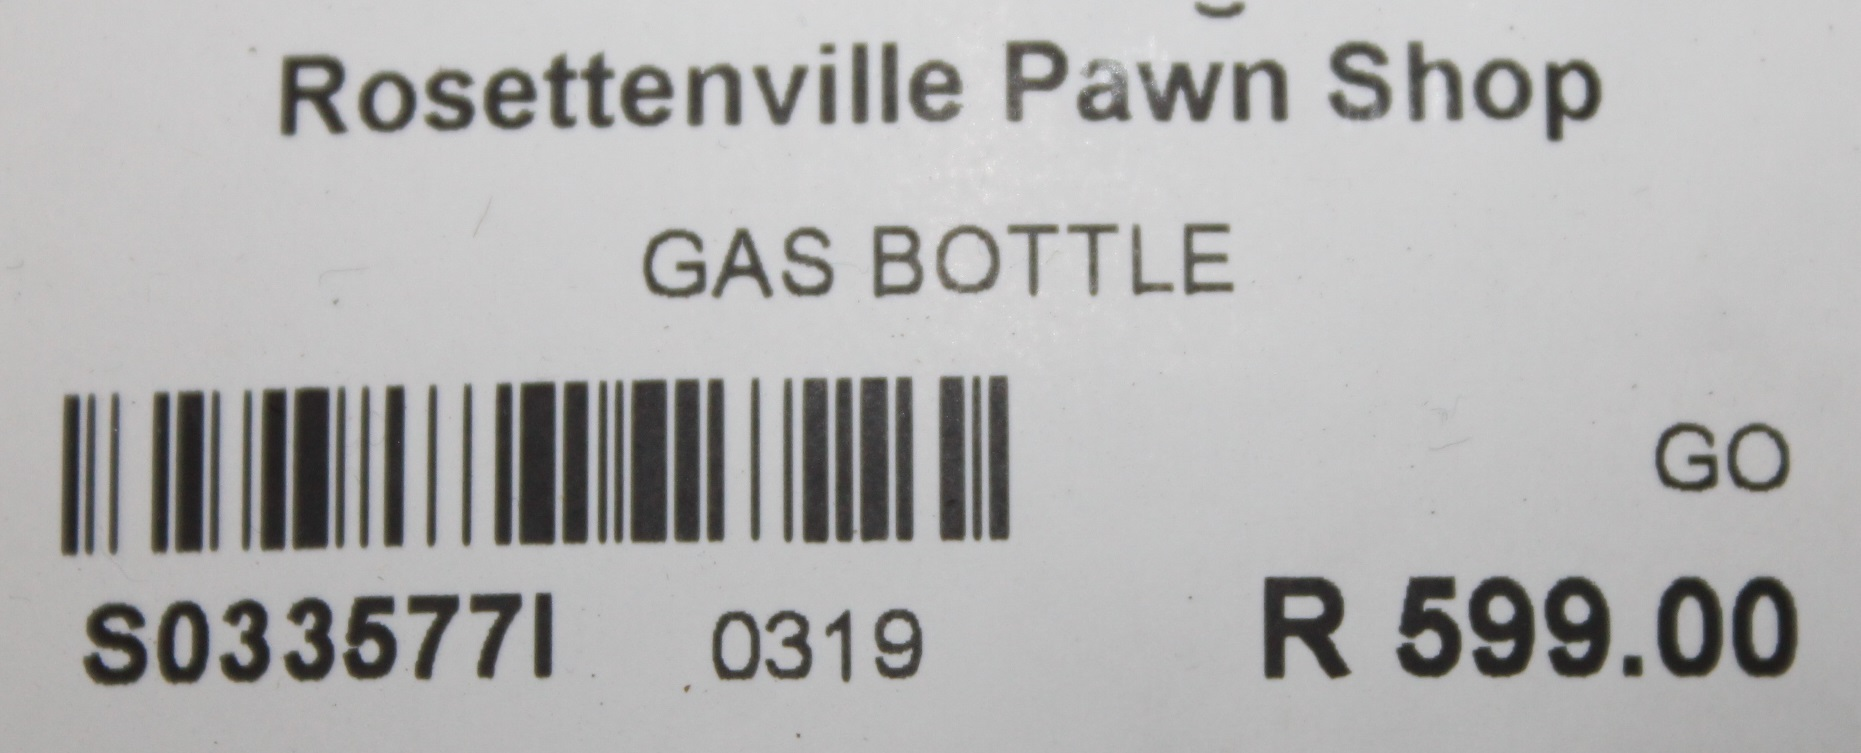 Gas bottle S033577I #Rosettenvillepawnshop